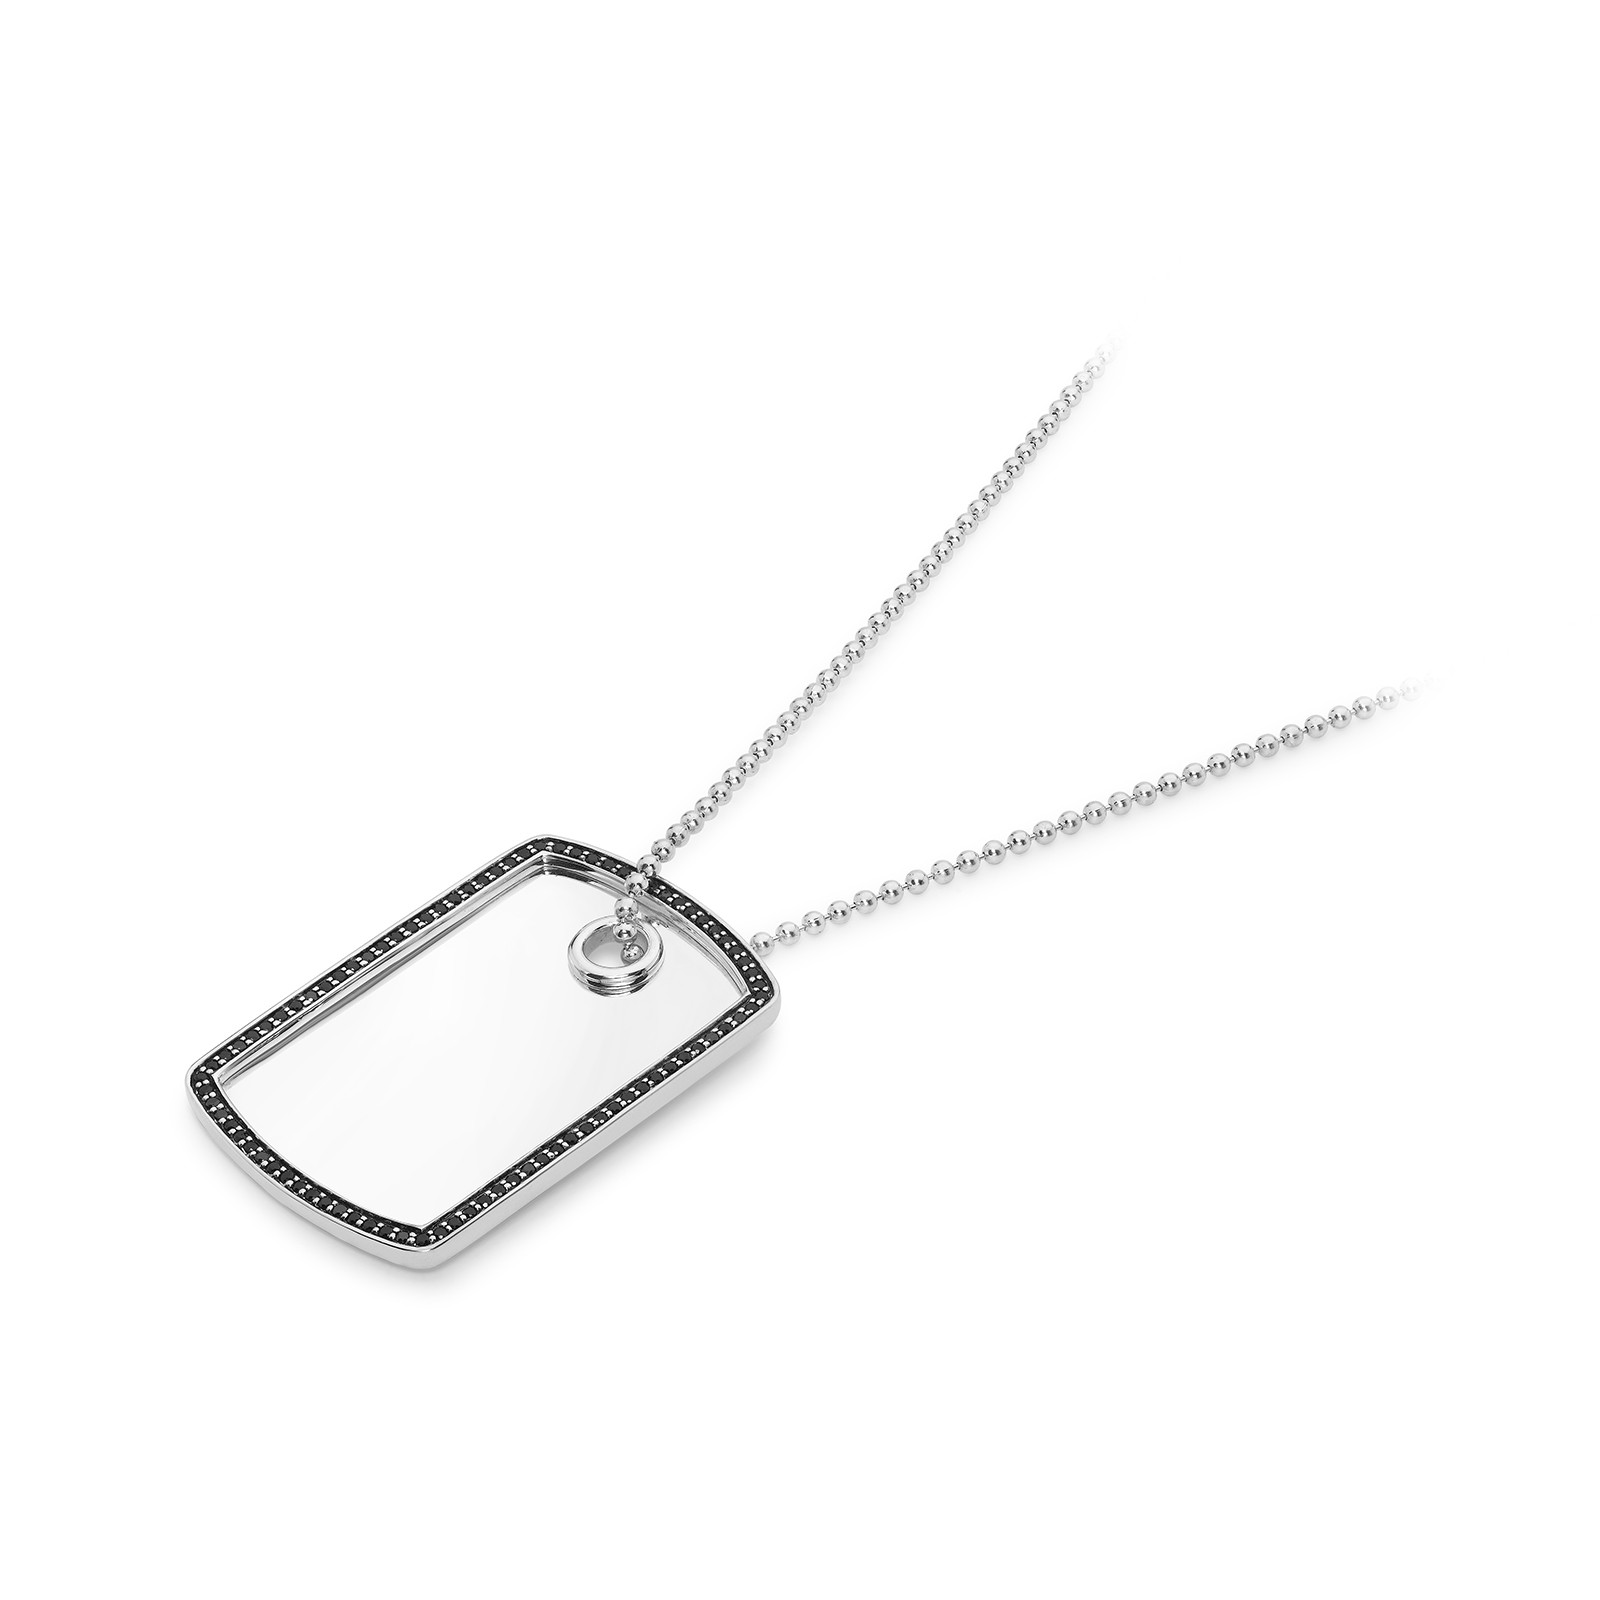 New Deakin & Francis ID Tag Necklace